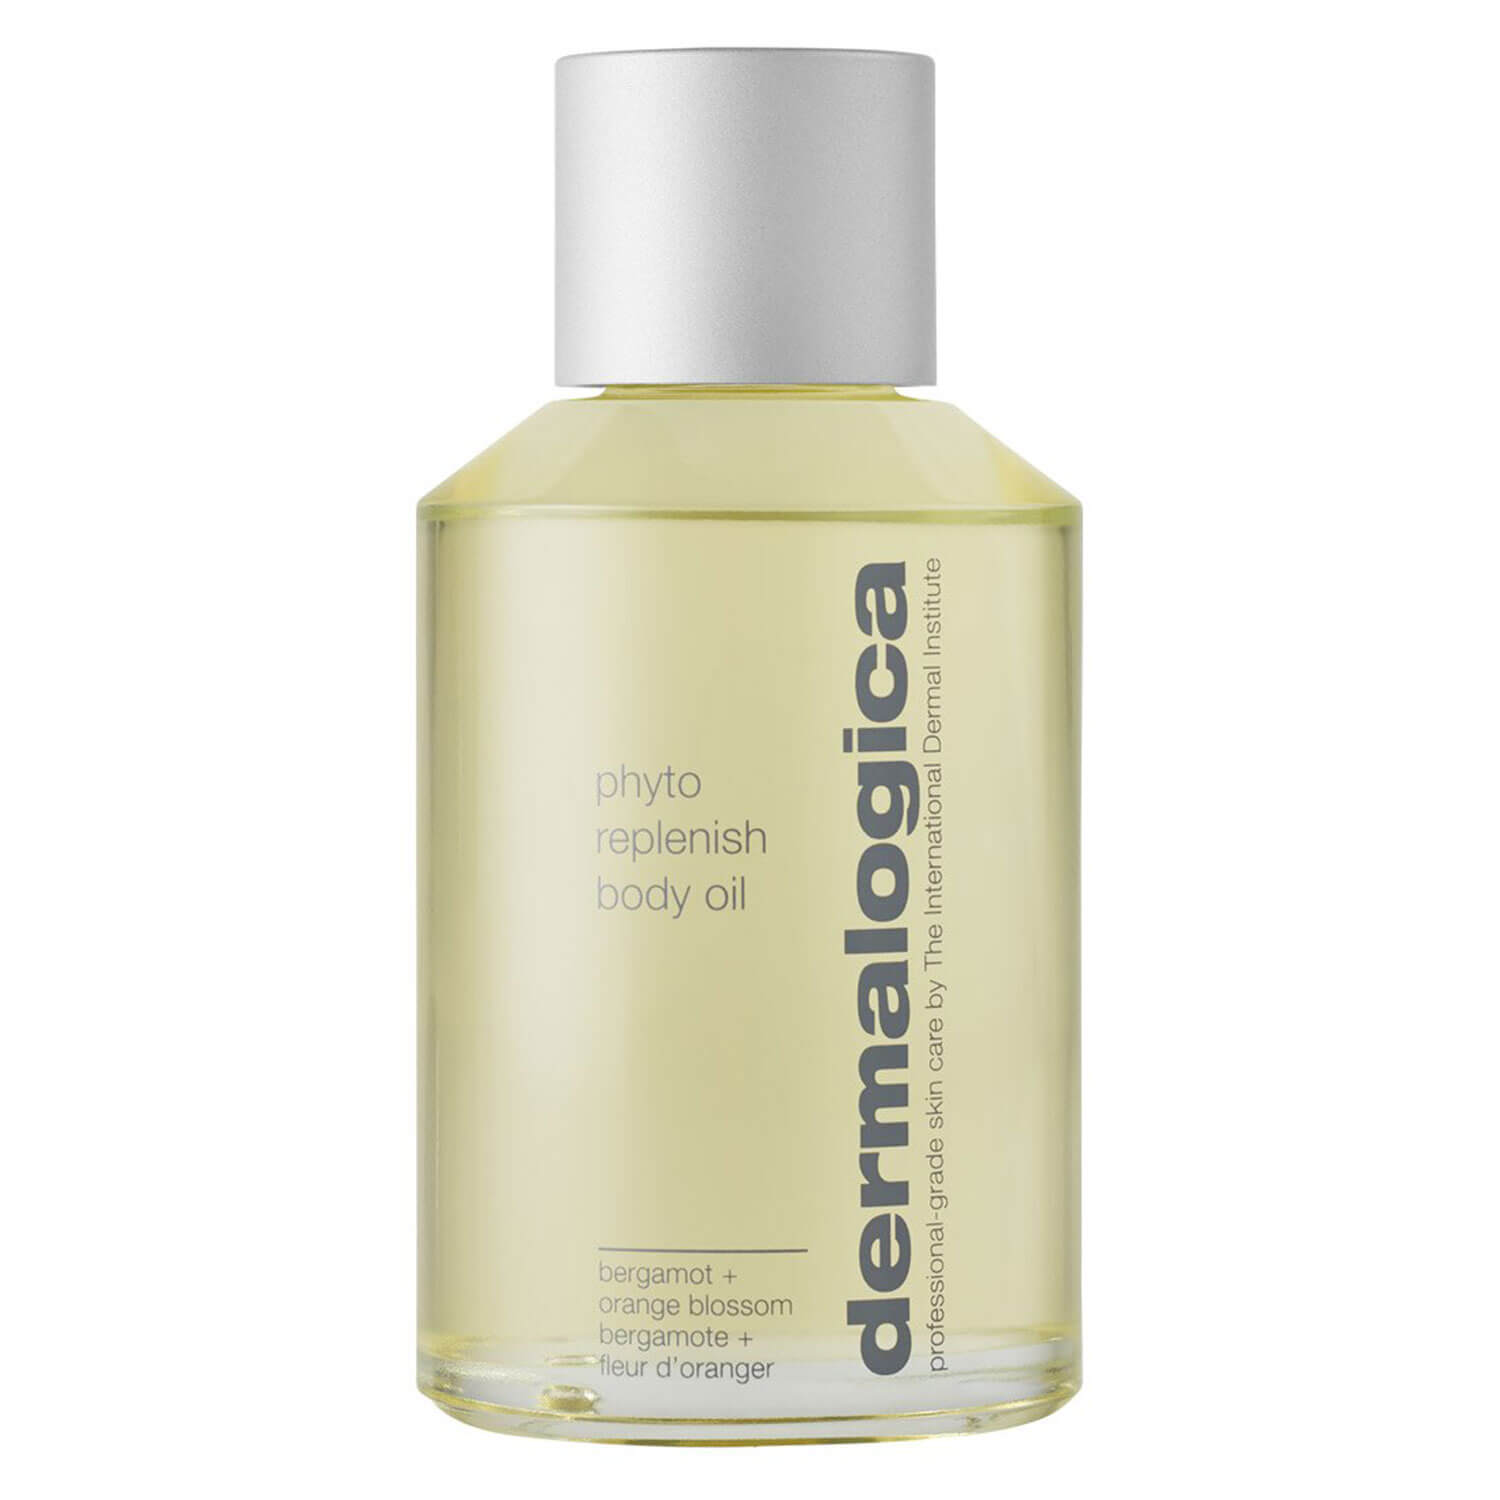 Dermalogica Body - Phyto Replenish Body Oil